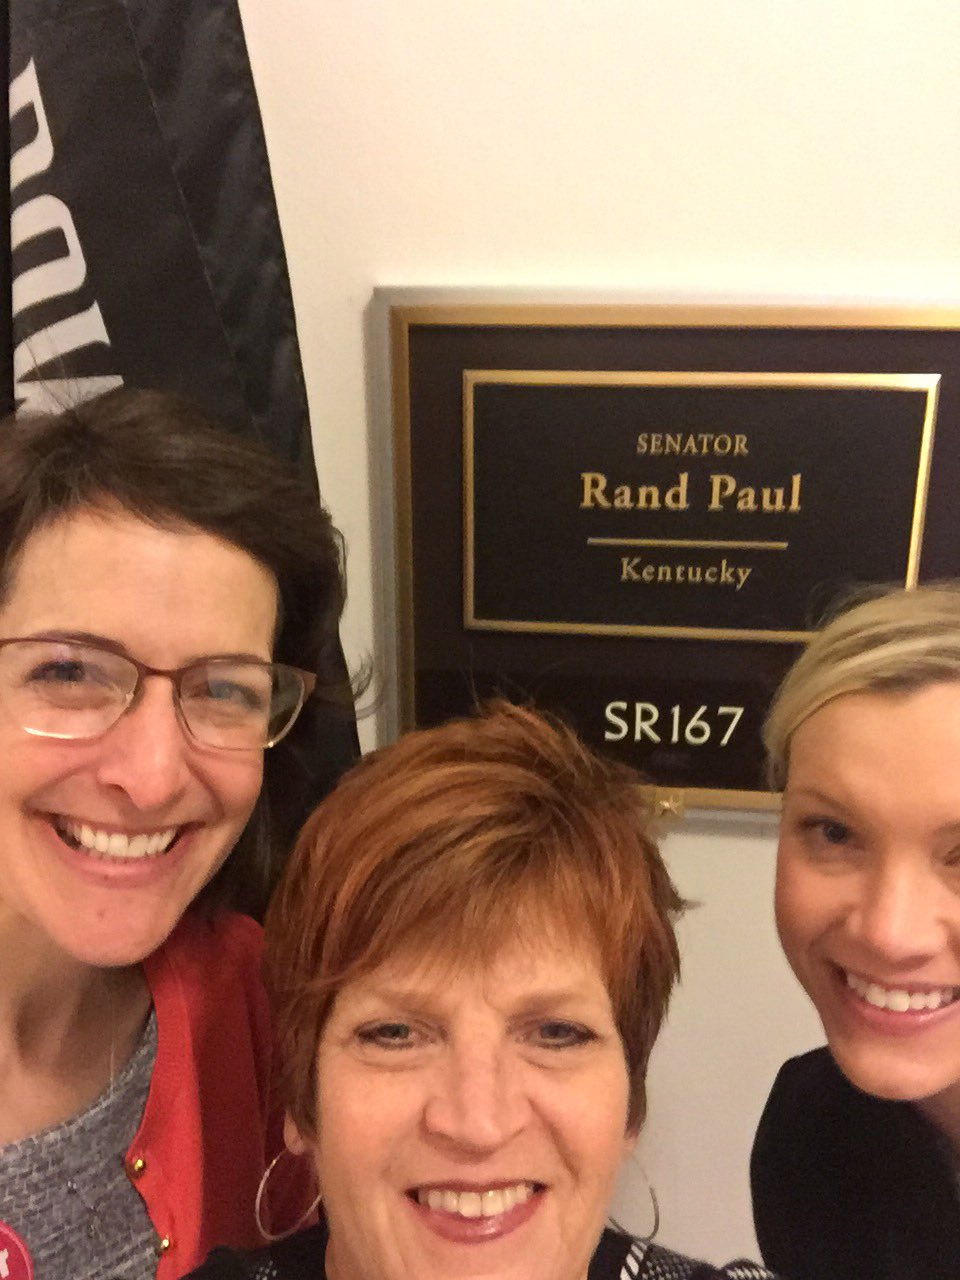 So excited to share the great work of @KyFoodBanks w/@RandPaul #hungerpc17 @FacingHungerFB @FeedingAmerica https://t.co/n2elYorYJR